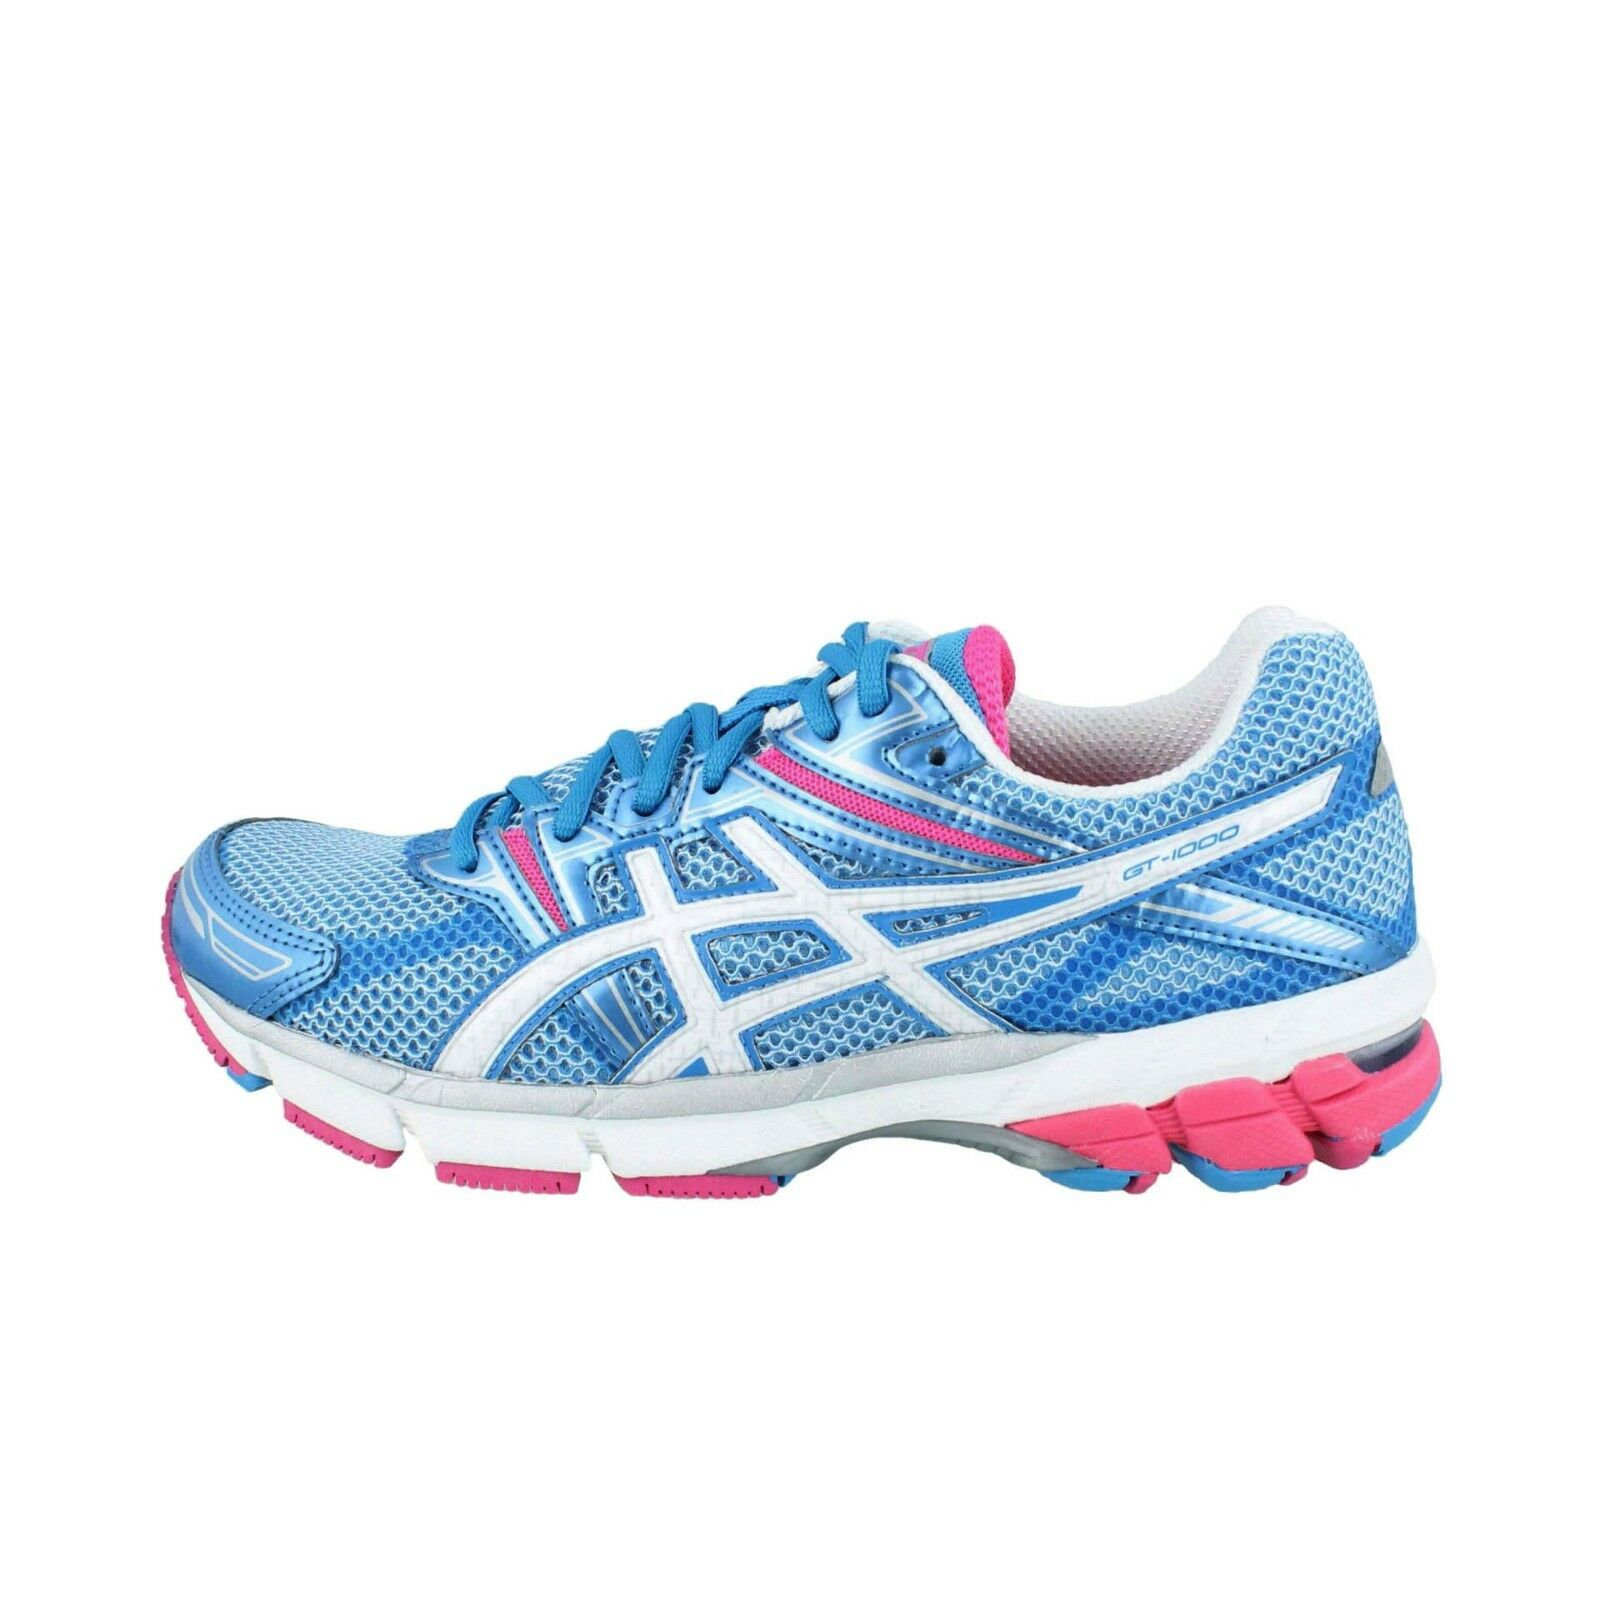 a94052031313 ... Asics Women s GT-1000 Shoes NEW AUTHENTIC Island Blue White T2L6N-6101   ...